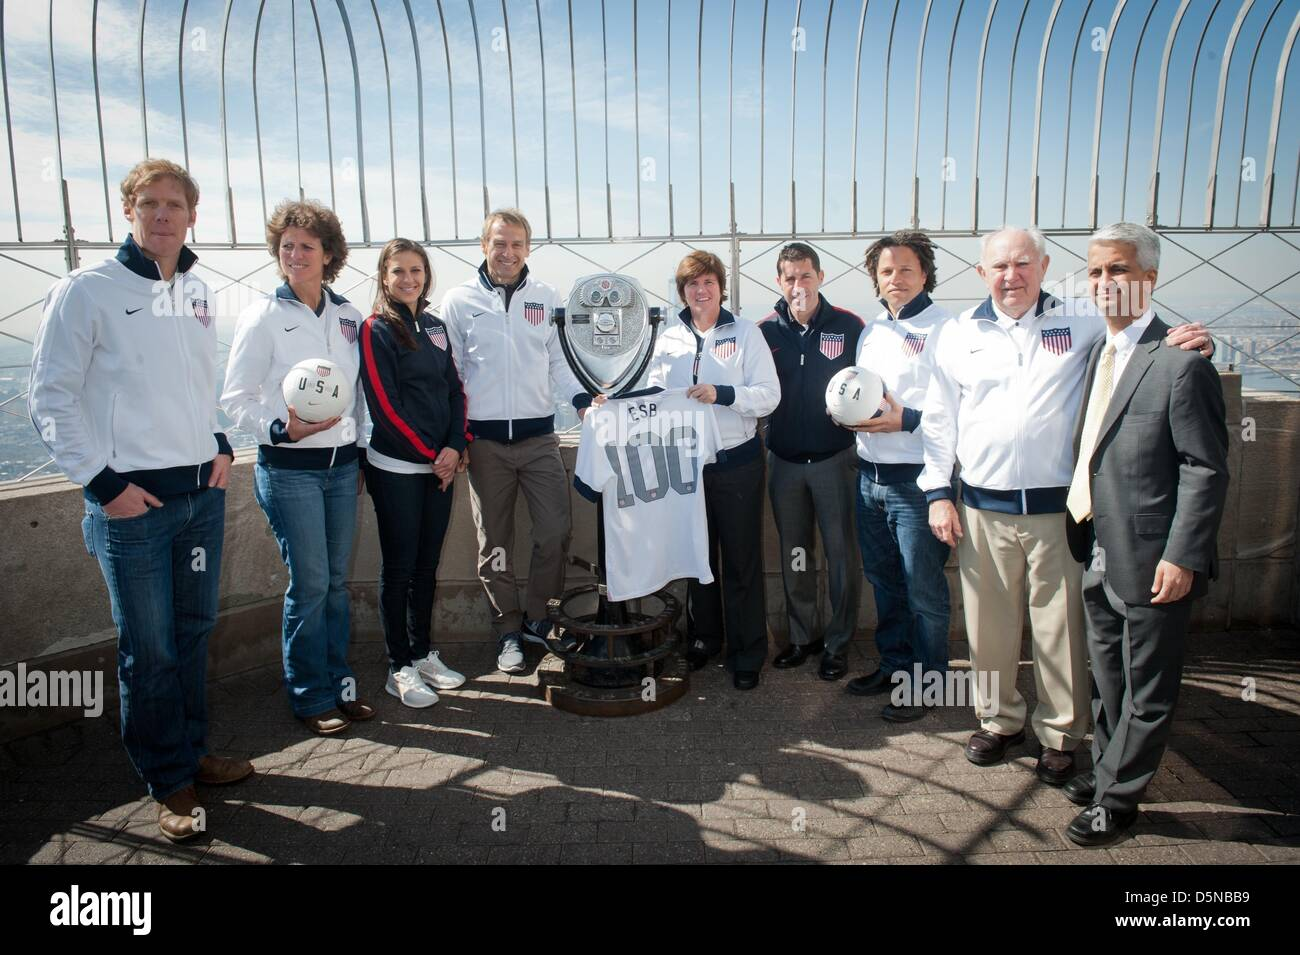 New York, USA. 5th April 2013. ALEXEI LALAS, MICHELLE AKERS, CARLI LLOYD, JURGEN KLINSMANN, APRIL HEINRICHS, TAB - Stock Image